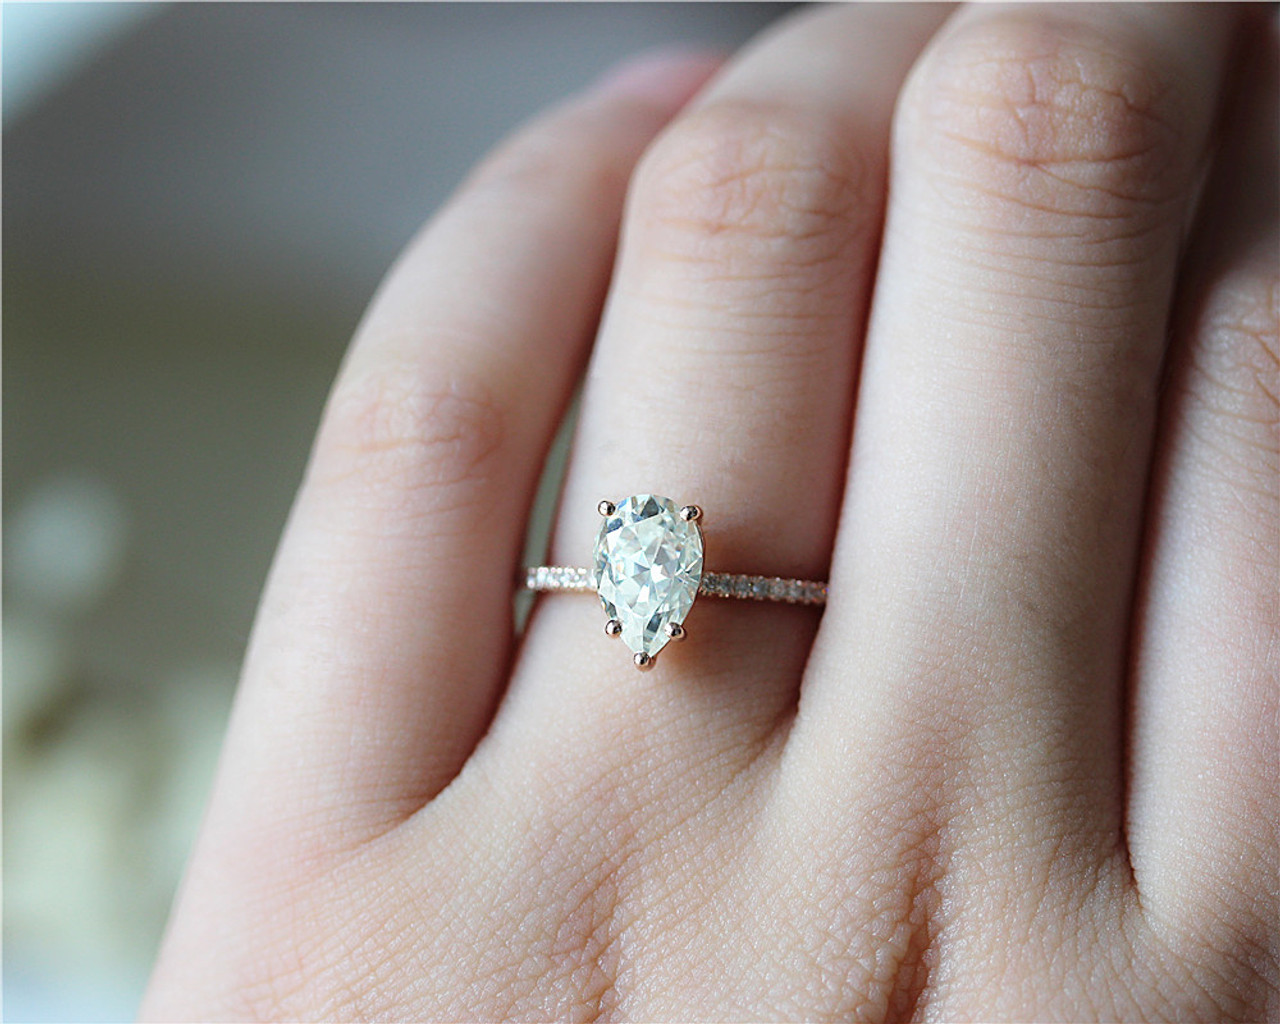 1 5ct Pear Cut Brilliant Moissanite Ring Solid 14K Rose Gold Moissanite  Engagement Ring